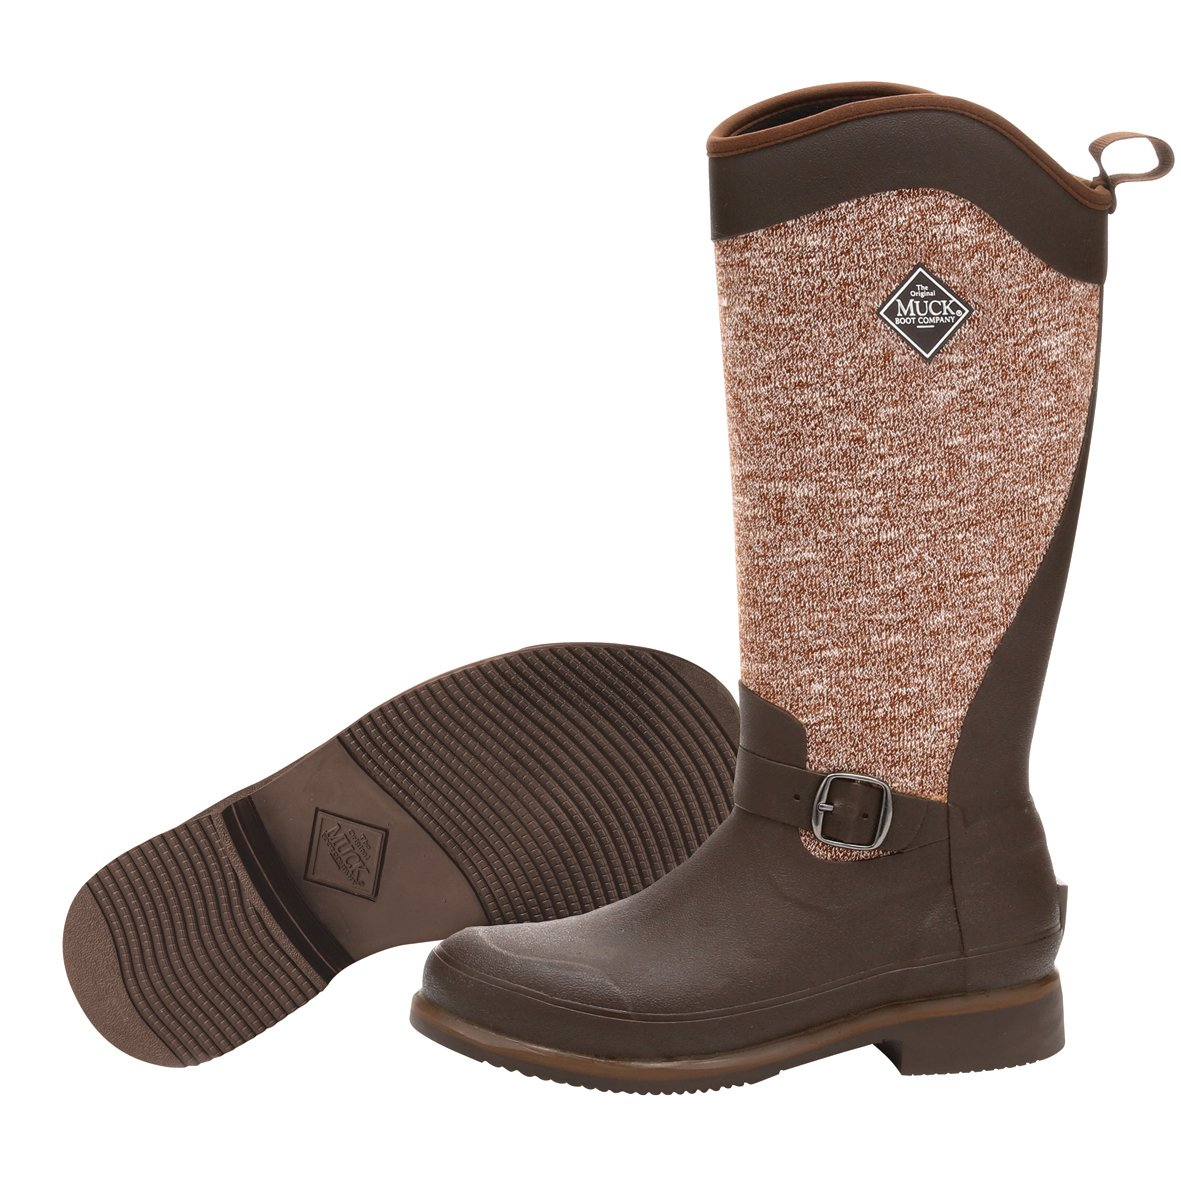 Muck Boot Women's Reign Supreme Snow Boot, Brown/Bison, 9 M US